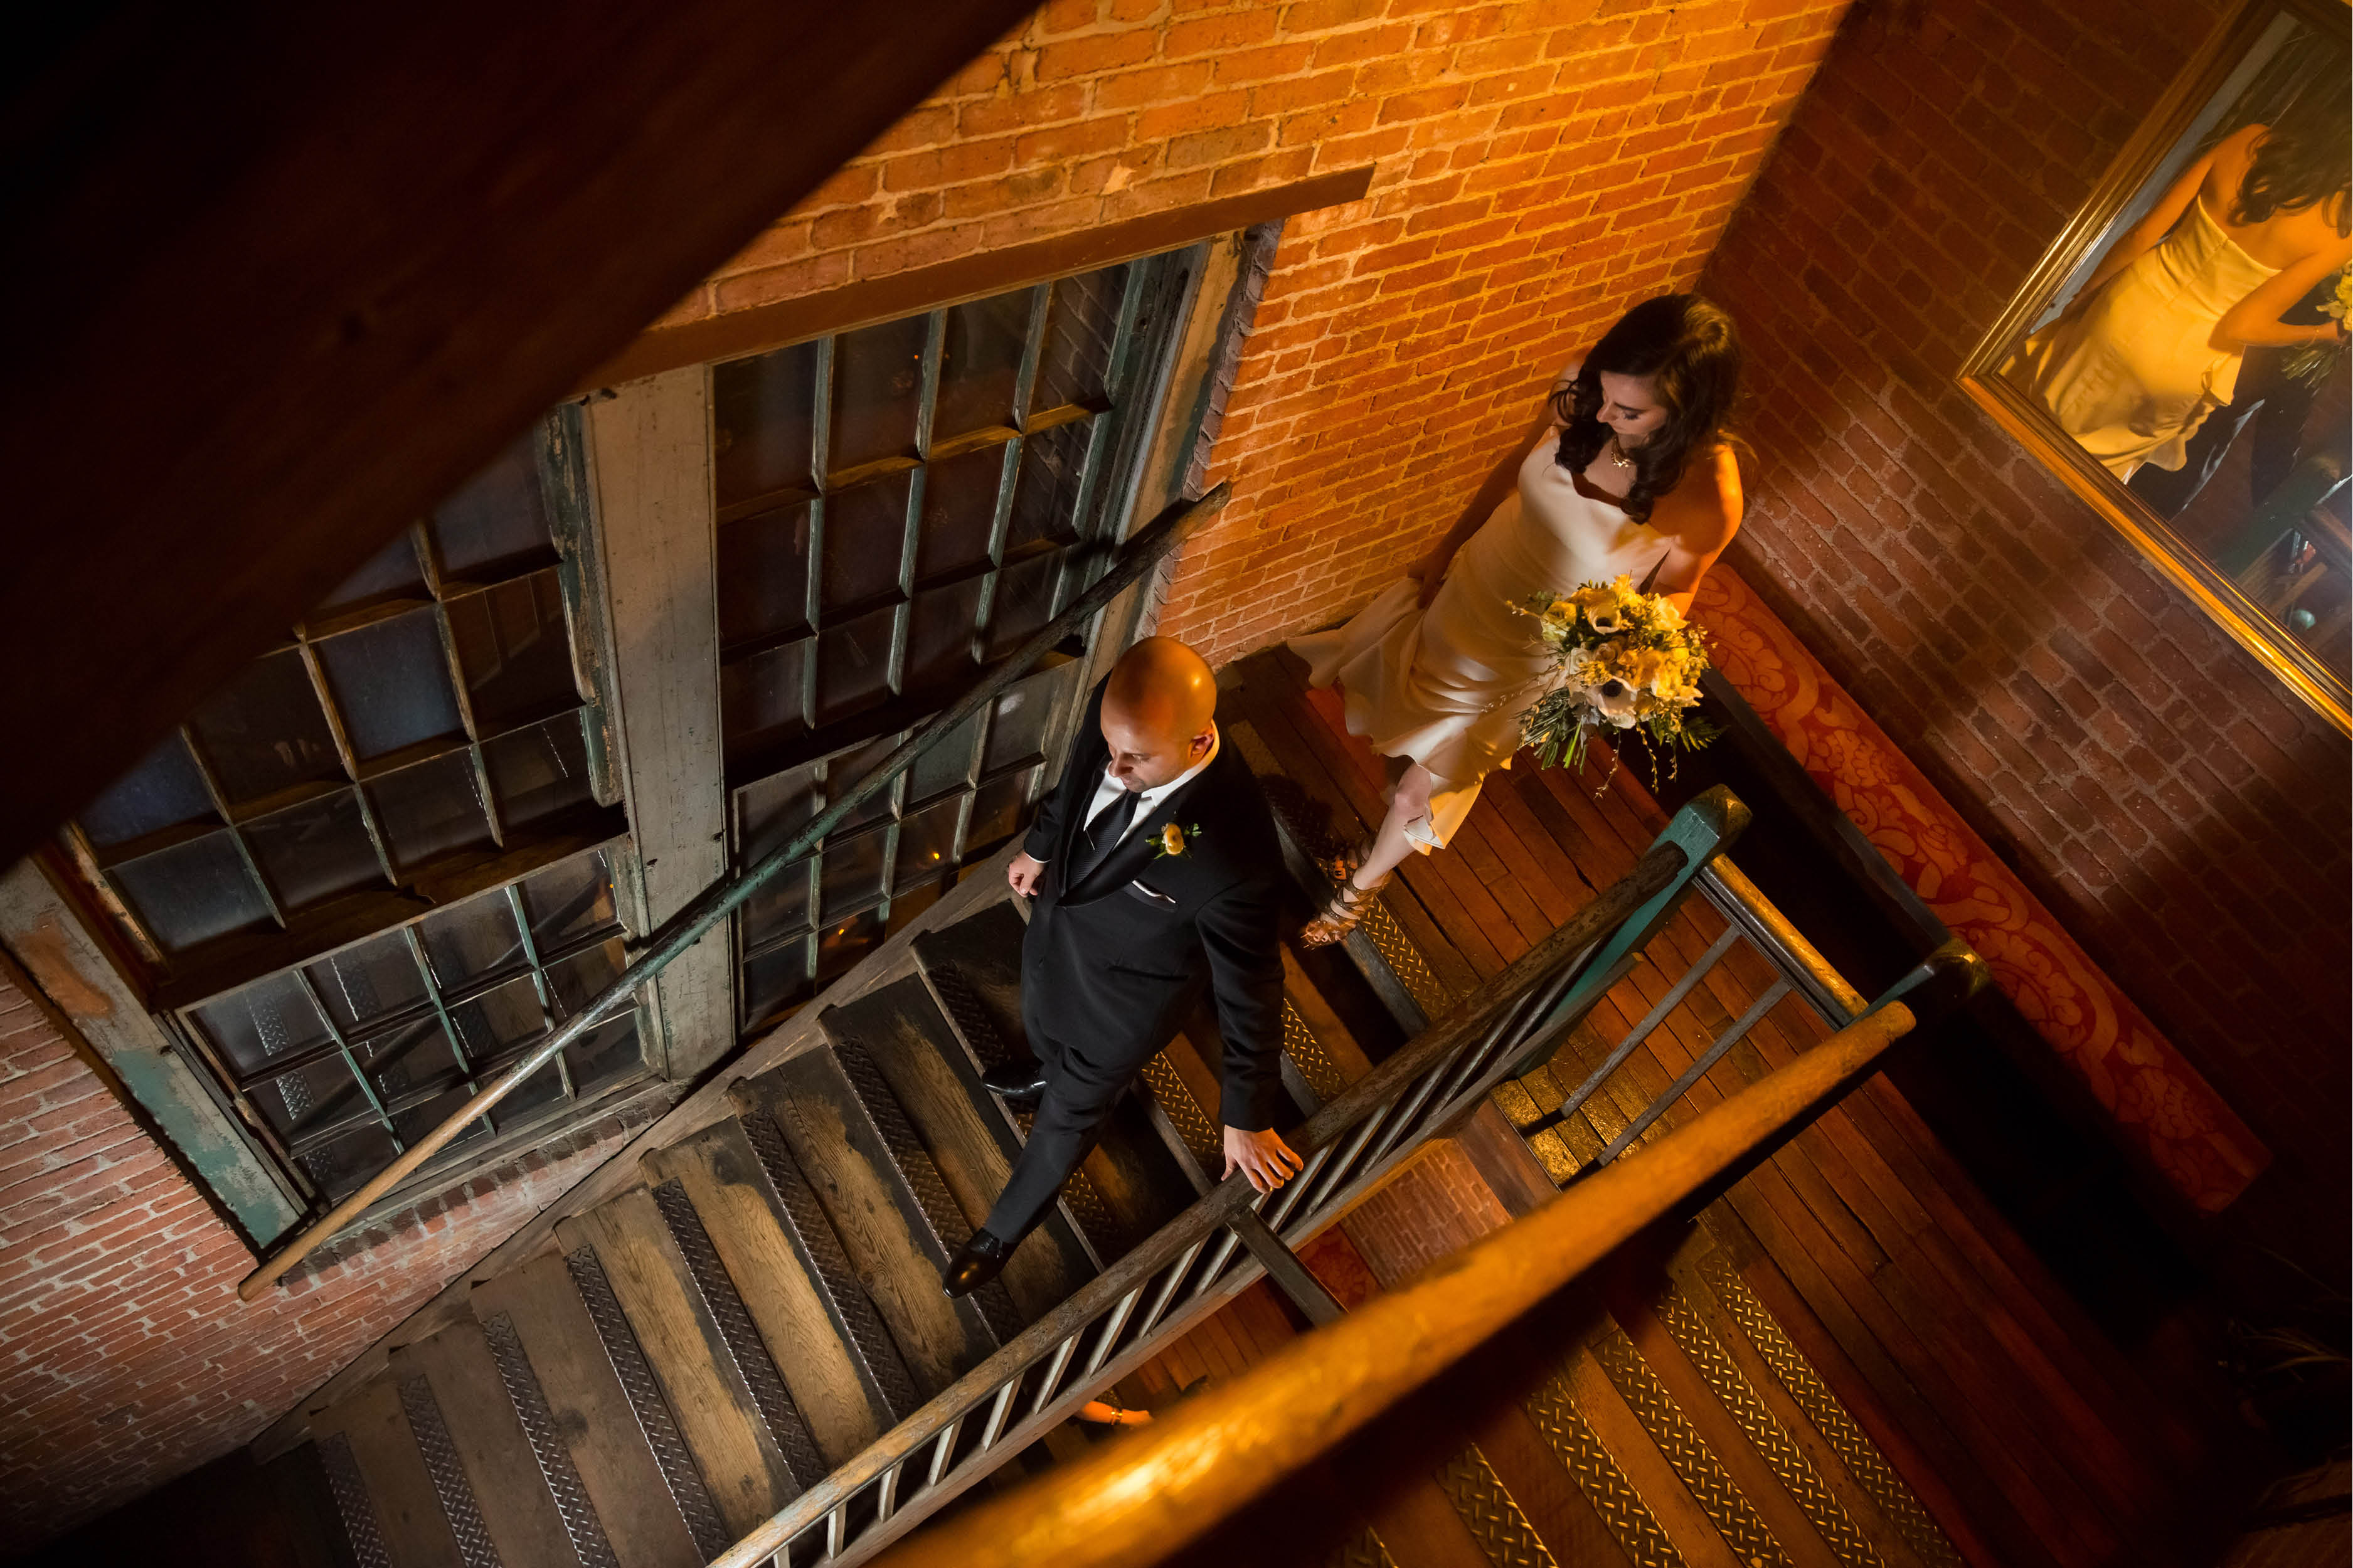 Emma_cleary_photography Metropolitan building wedding20